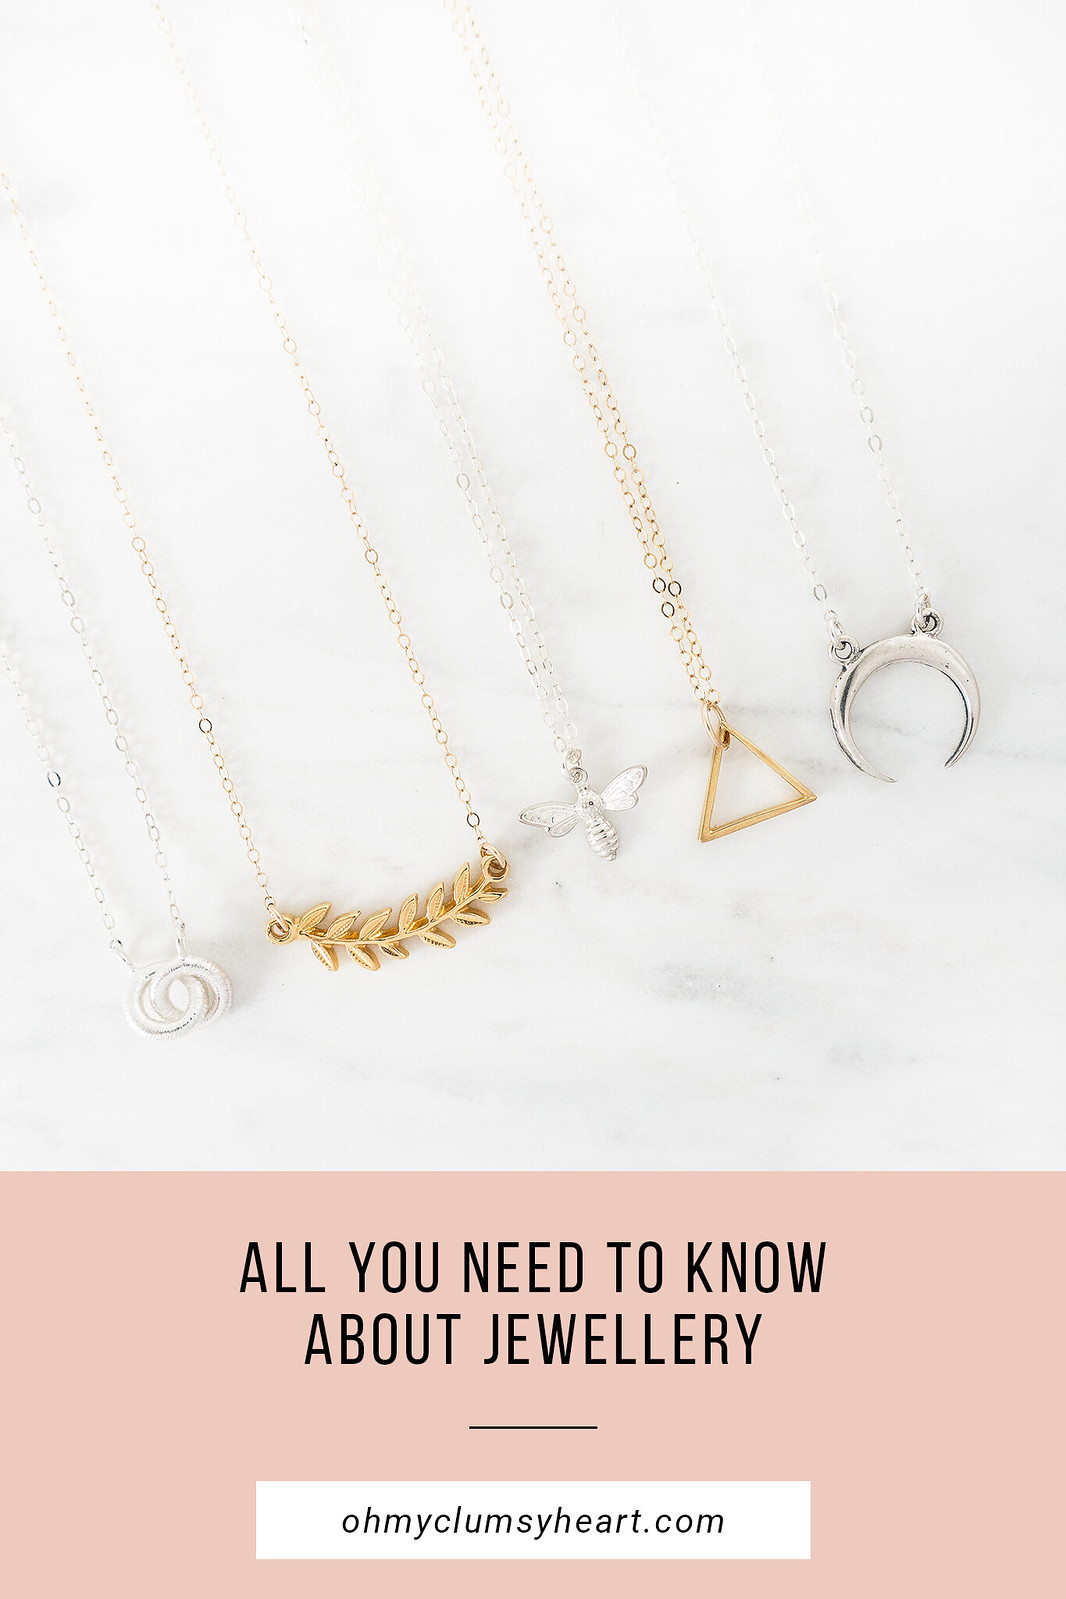 All You Need To Know About Jewellery